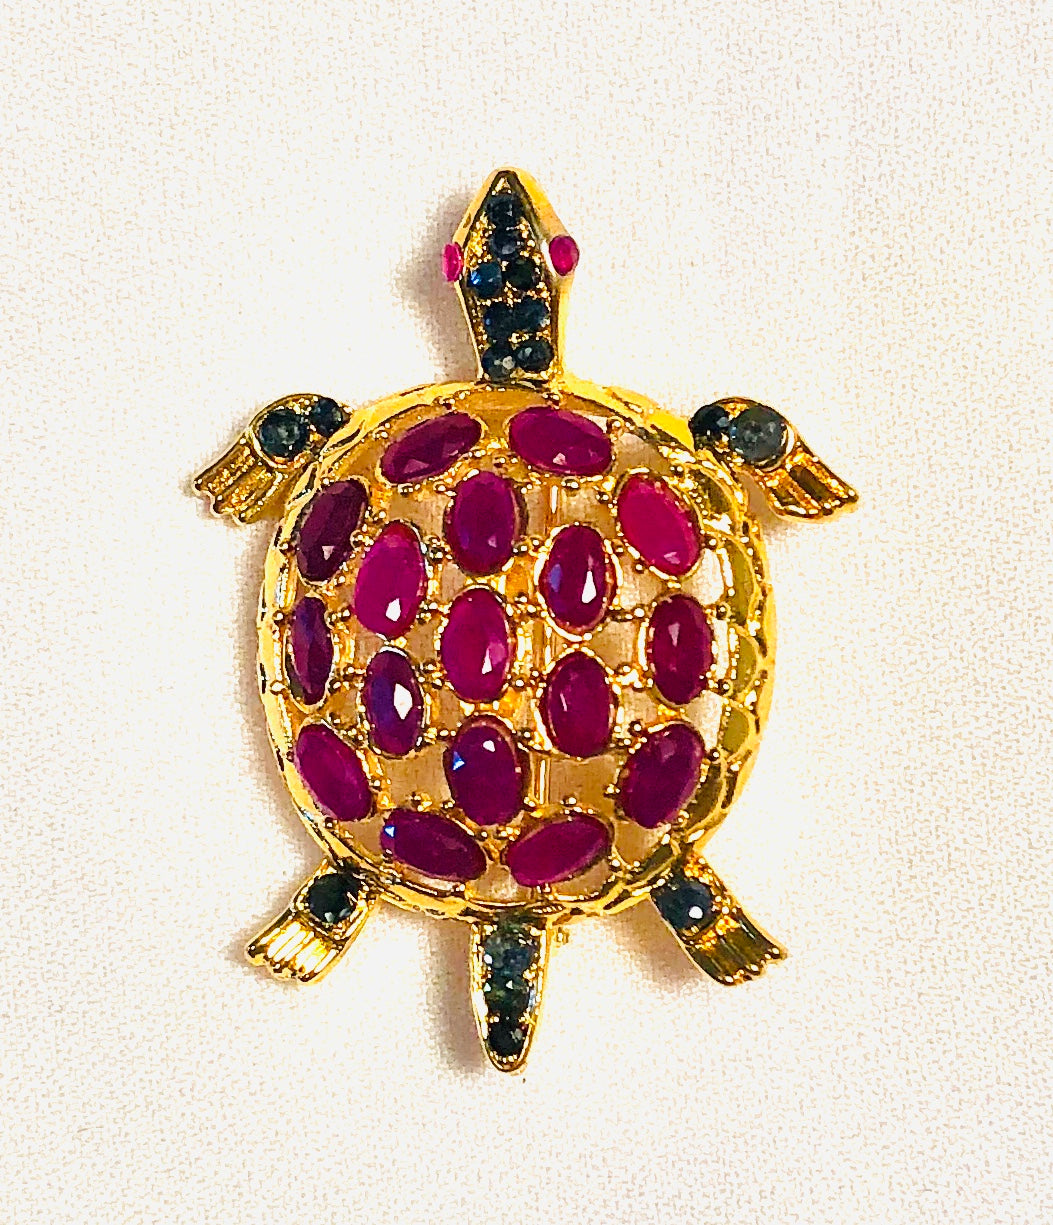 Geniune Ruby and Sapphire Brooch